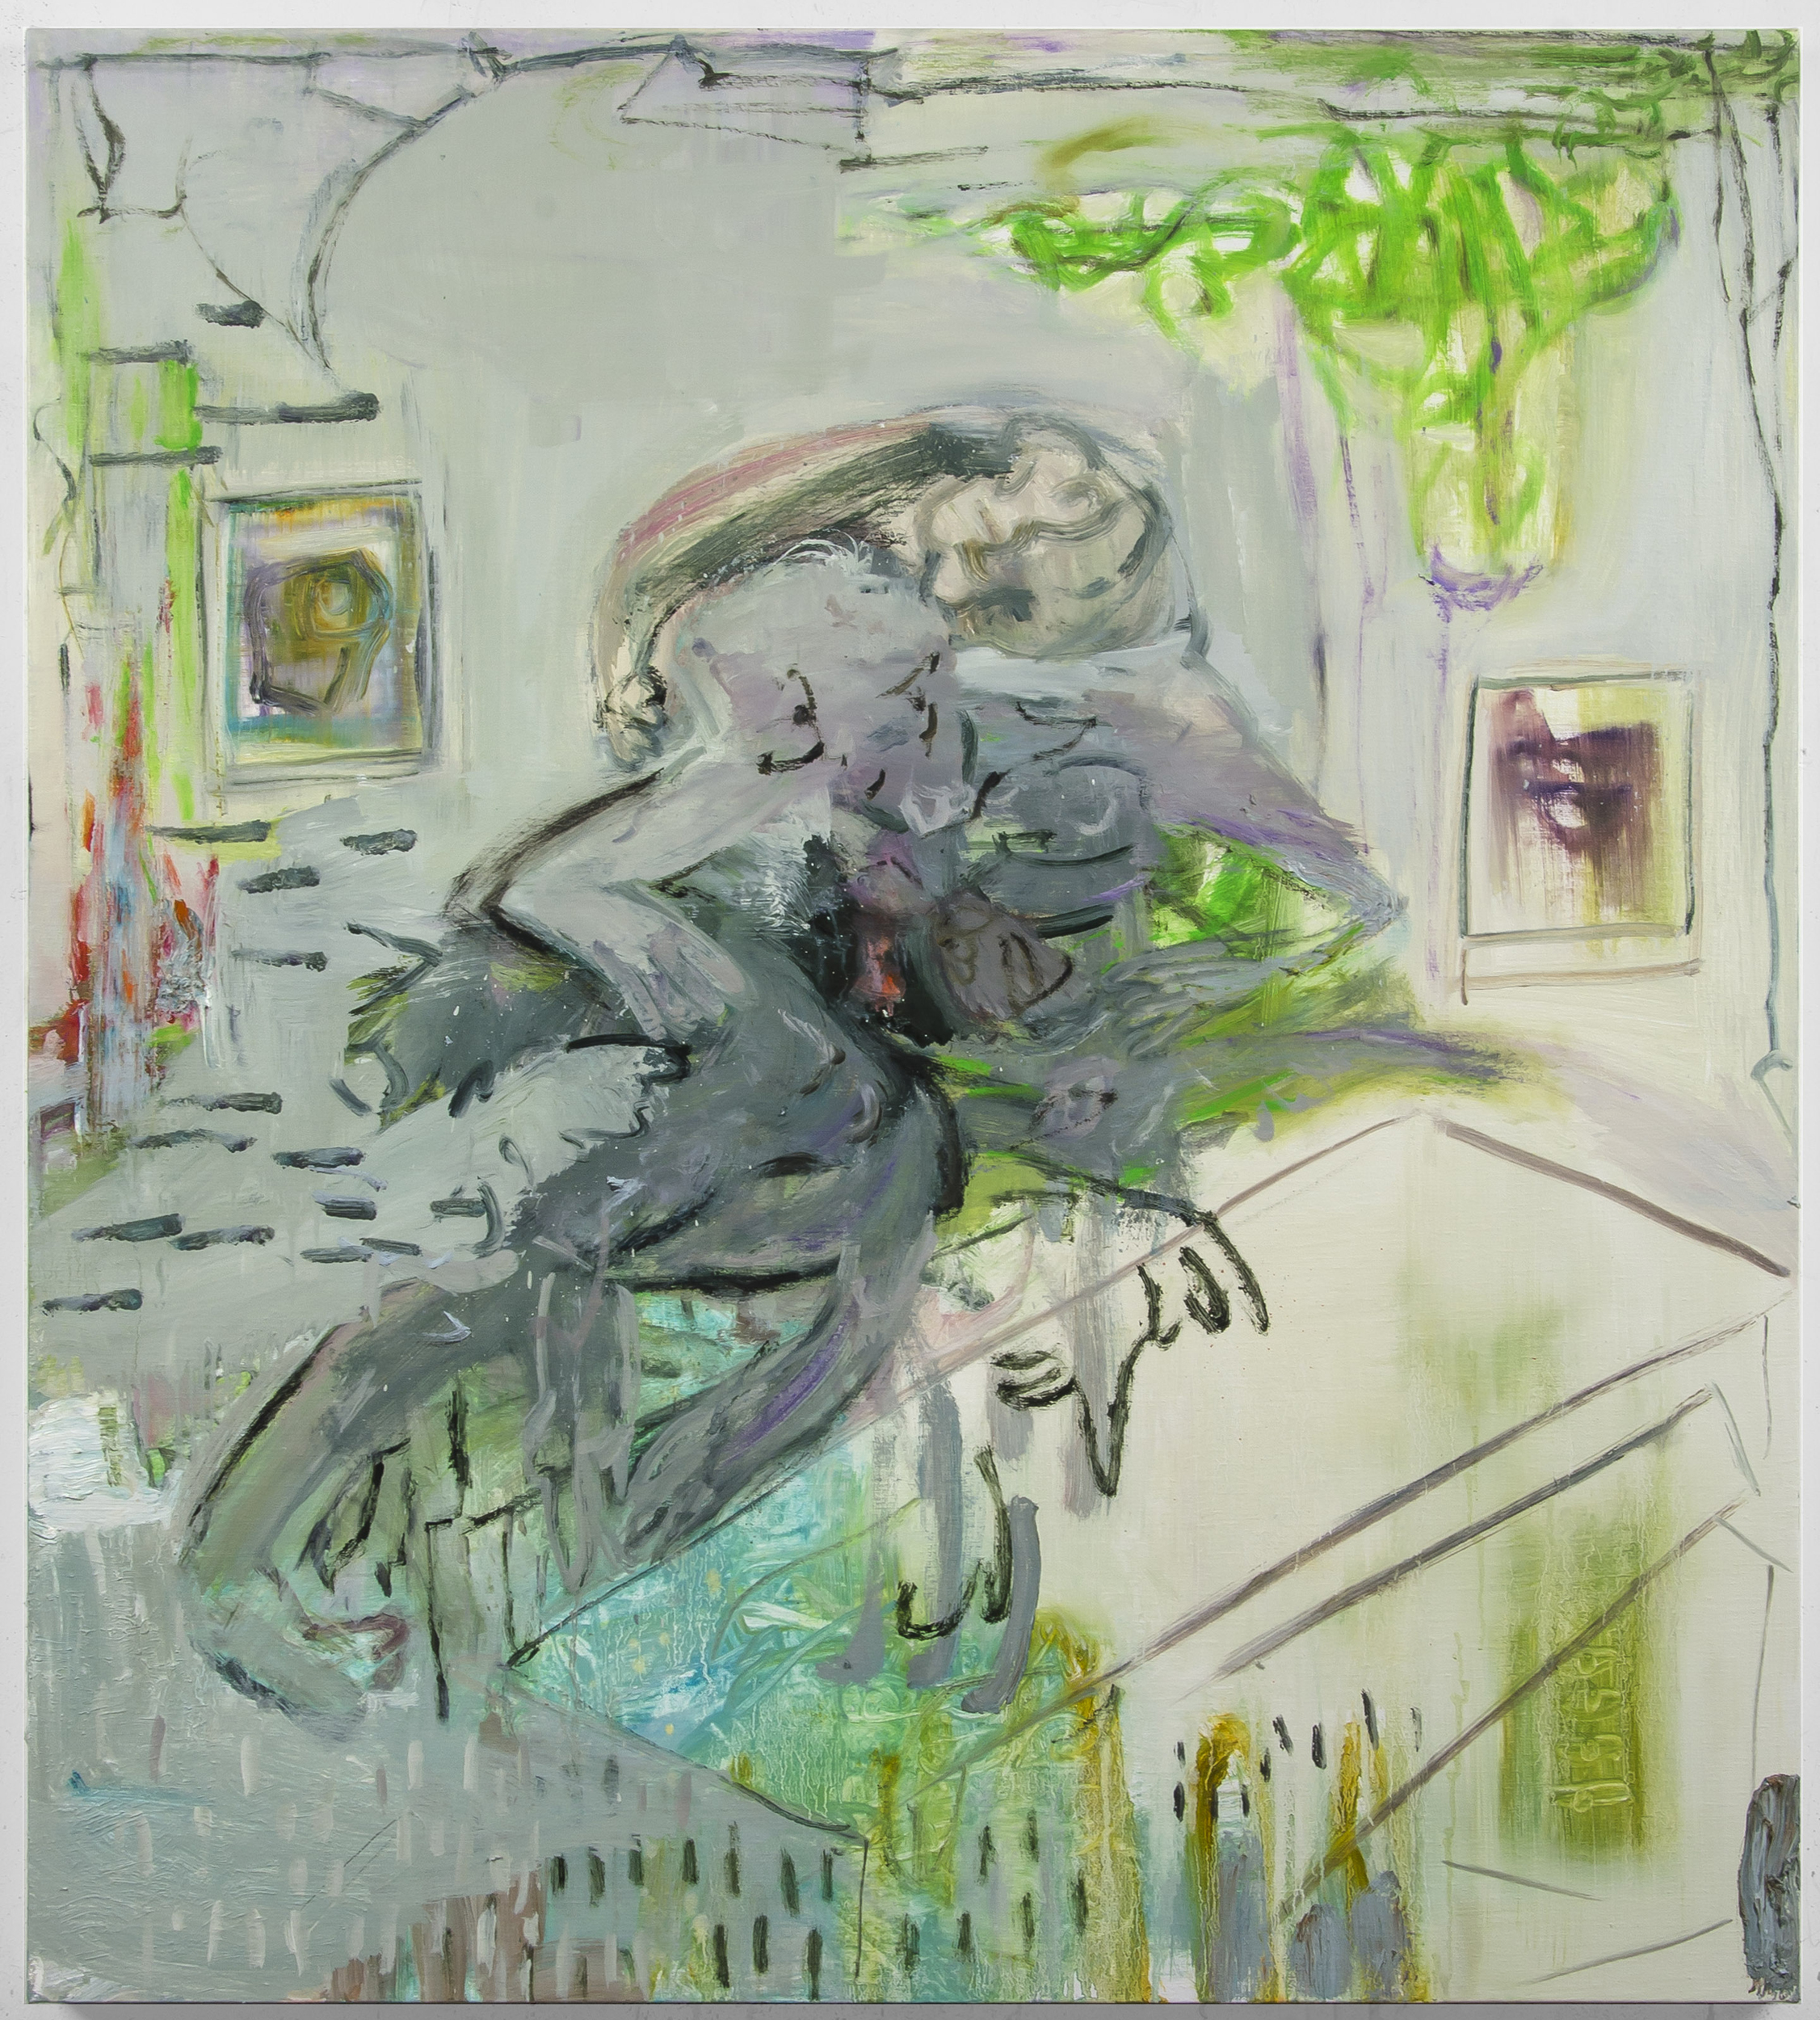 Julia Schwartz,  Late night tussle while outside bullets fly , Oil on linen, 40 x 36 inches